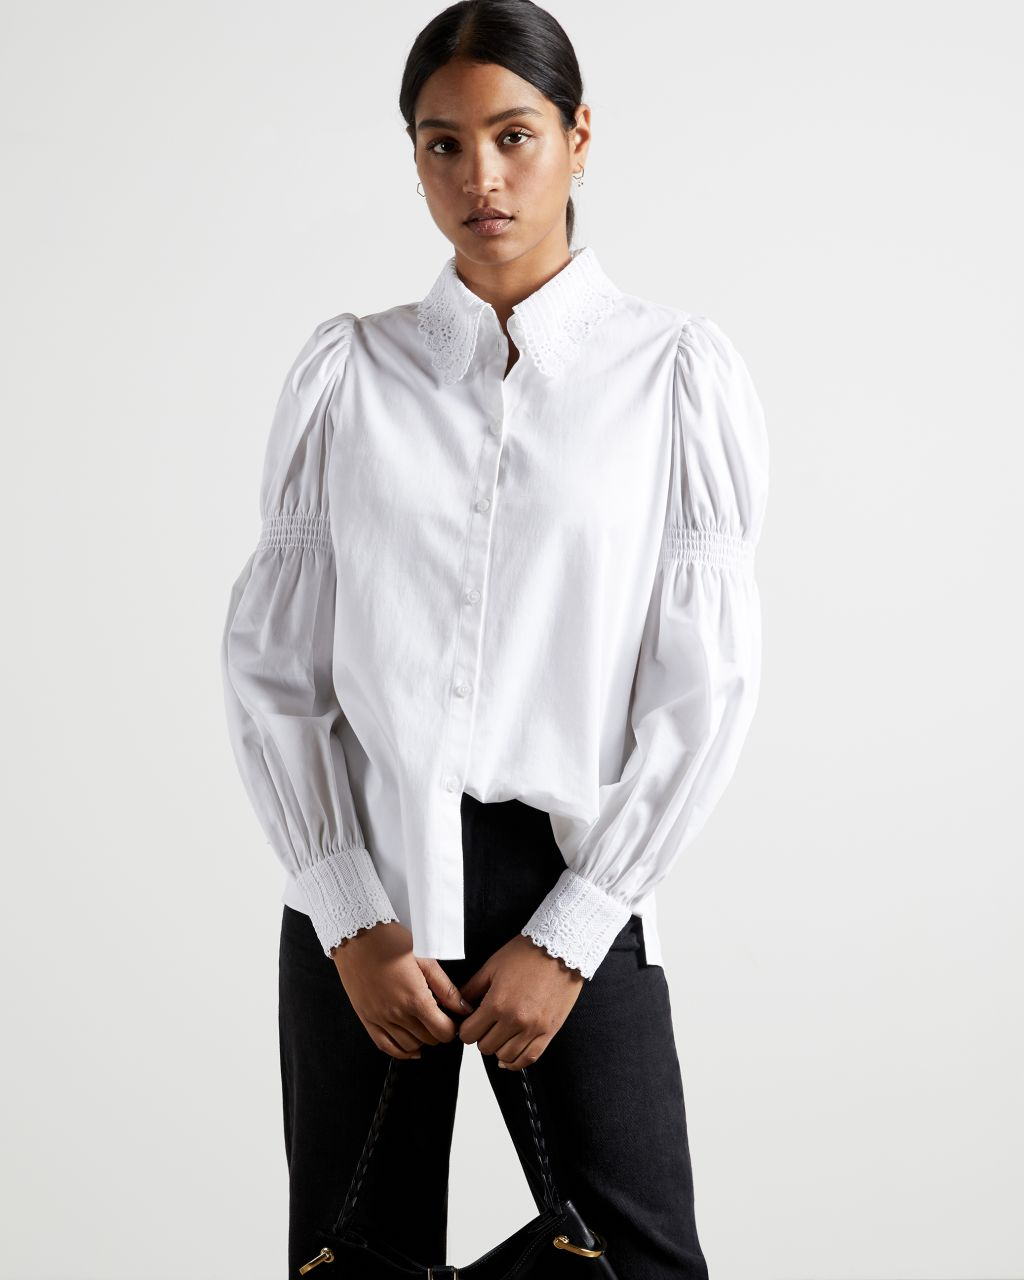 TED BAKER Cotton Shirt With Lace Trim   TED BAKER SALE